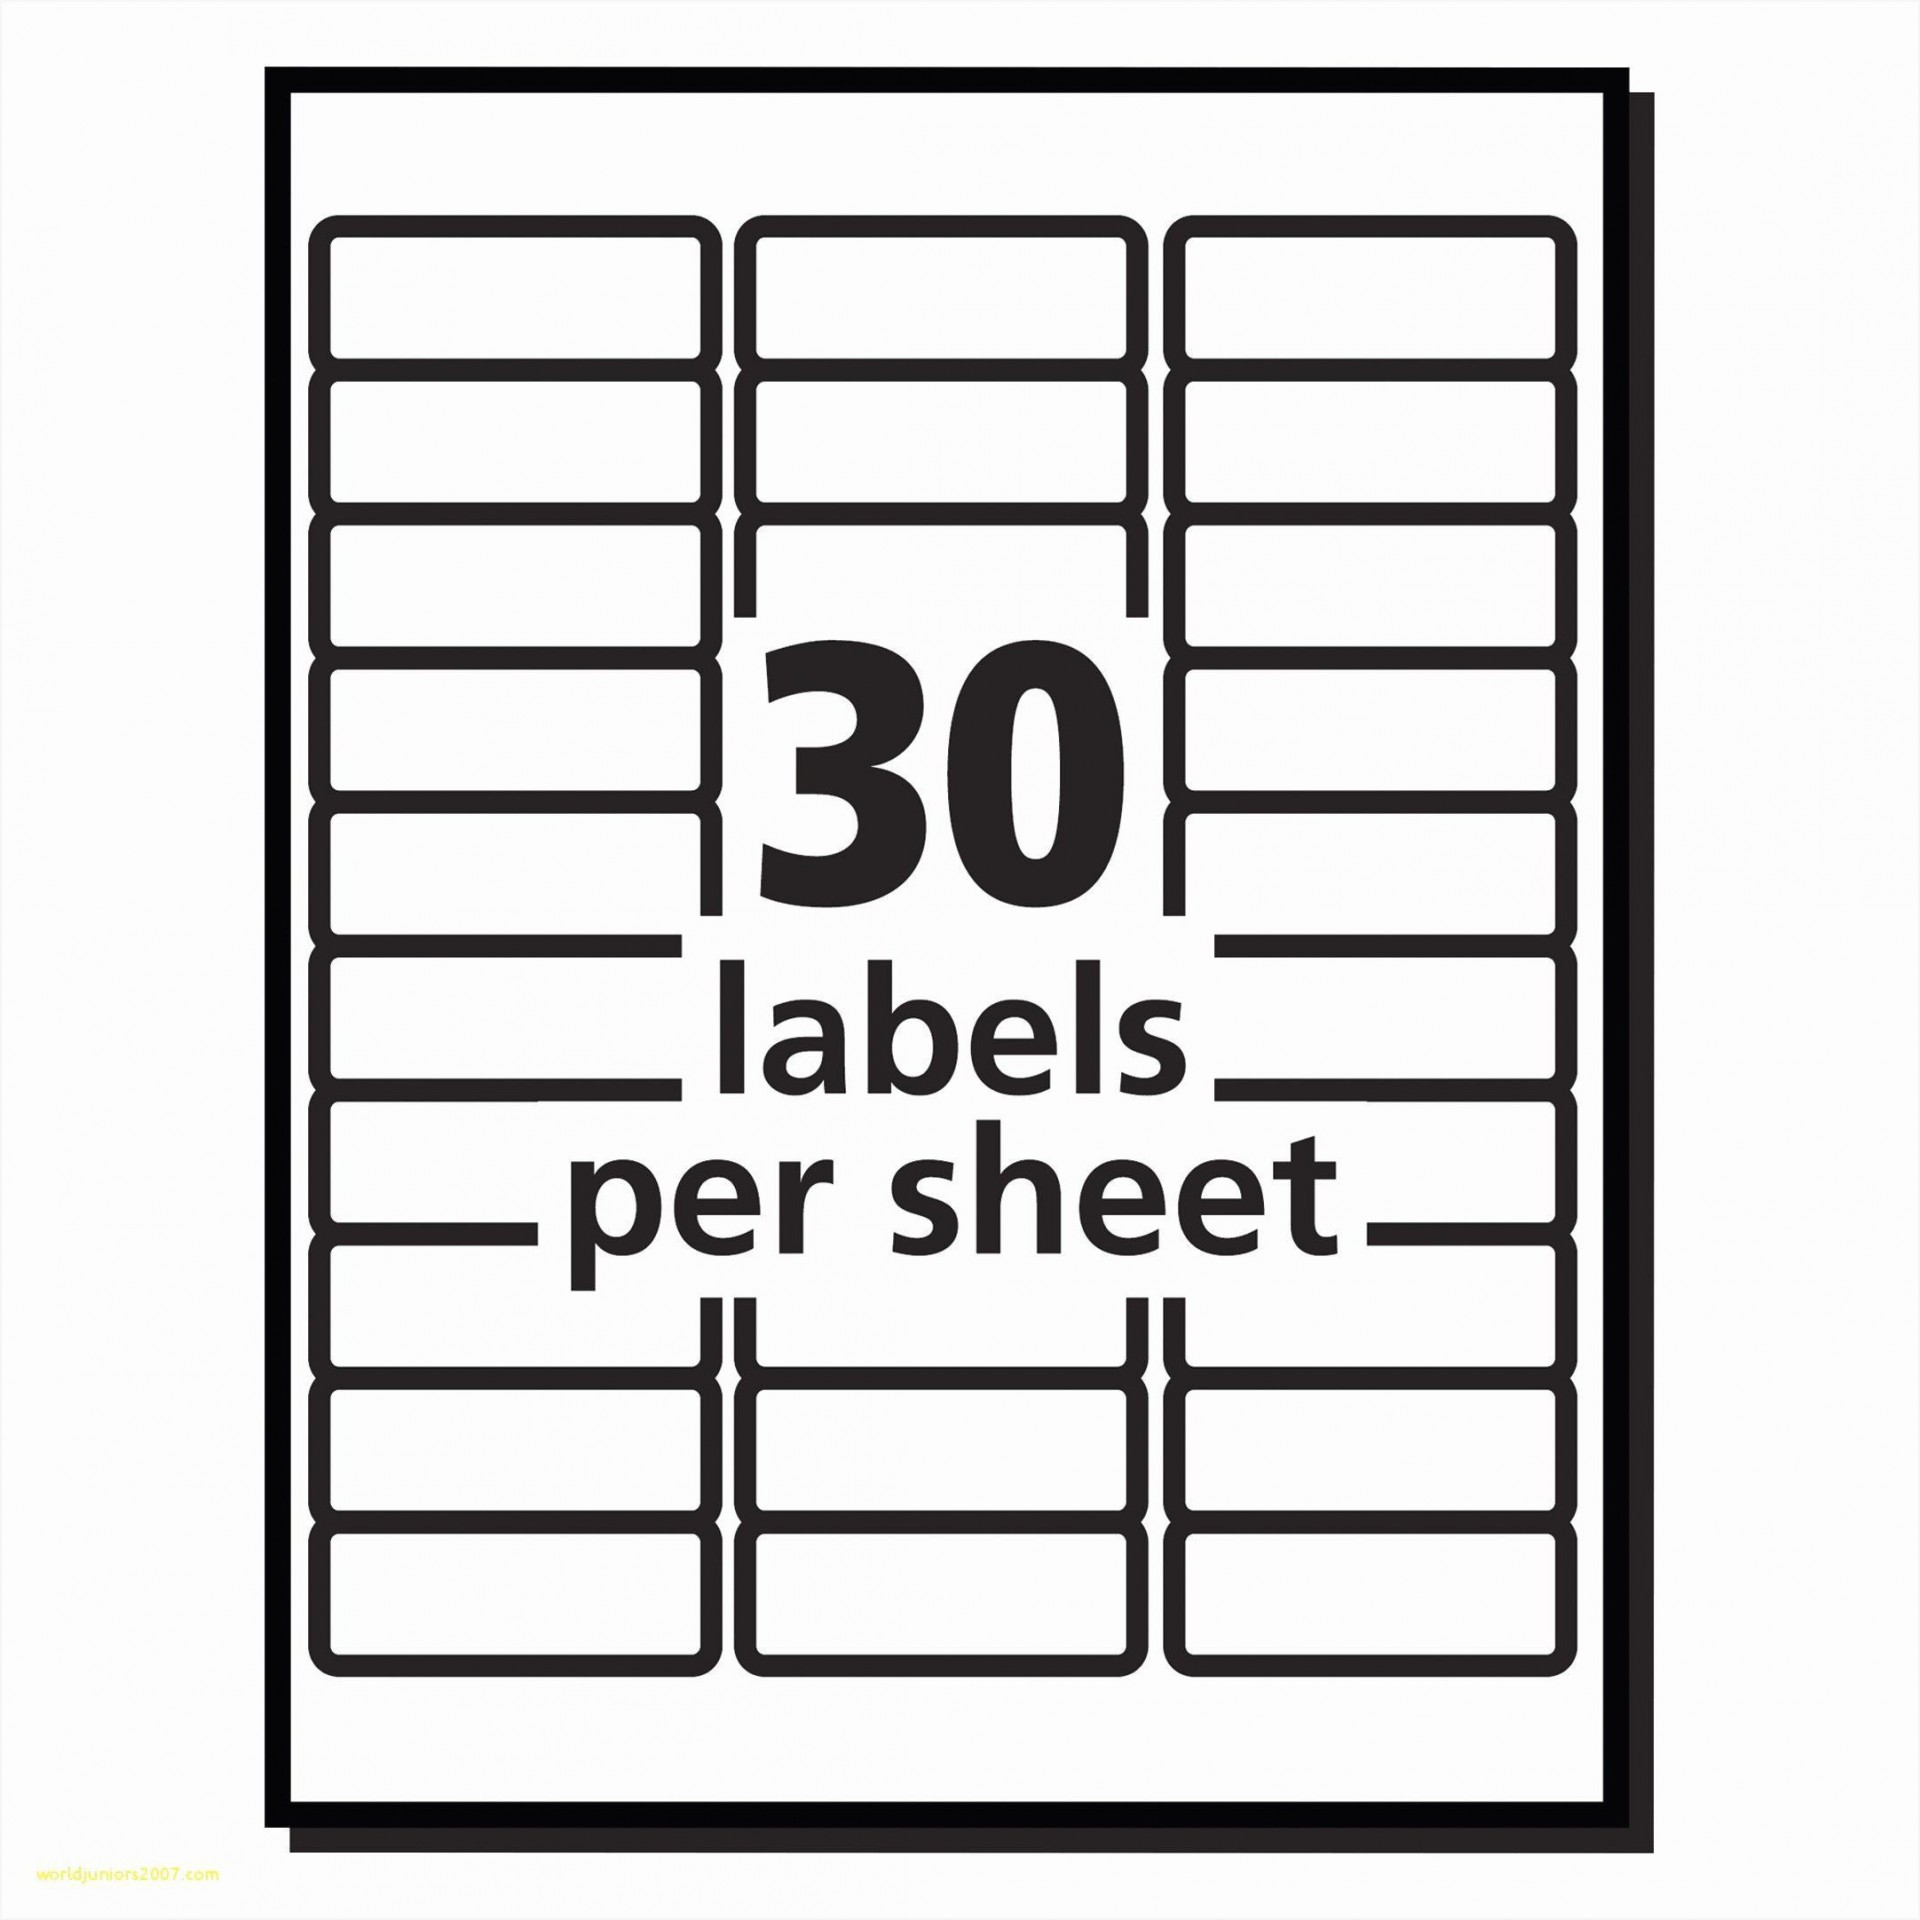 006 Simple Addres Label Template For Mac High Definition  Page Avery 5160 Word1920